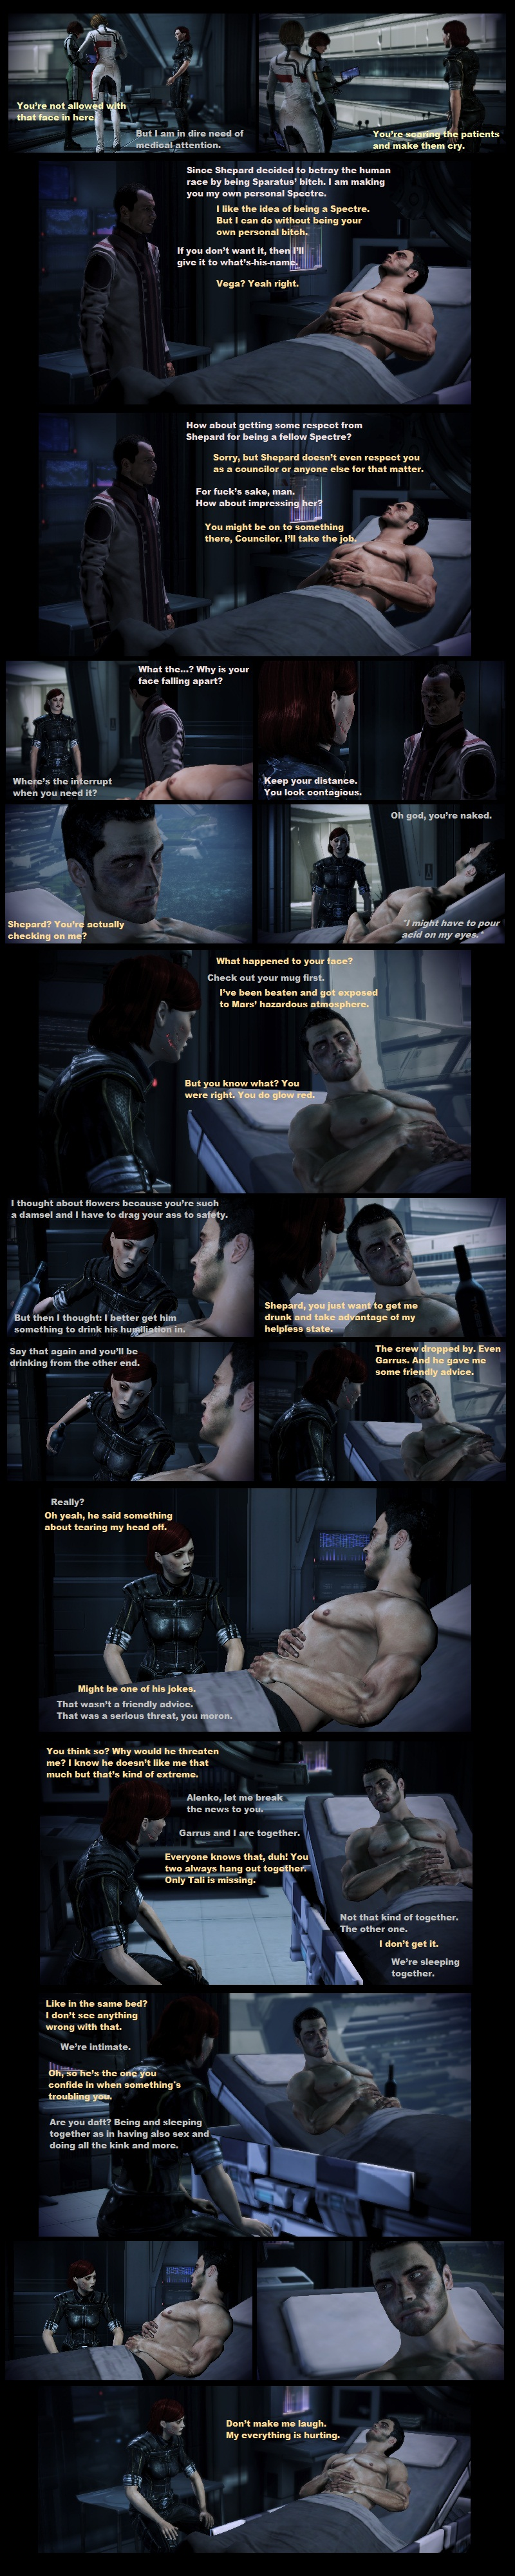 Mass effect 3 Detour - P78 by Pomponorium